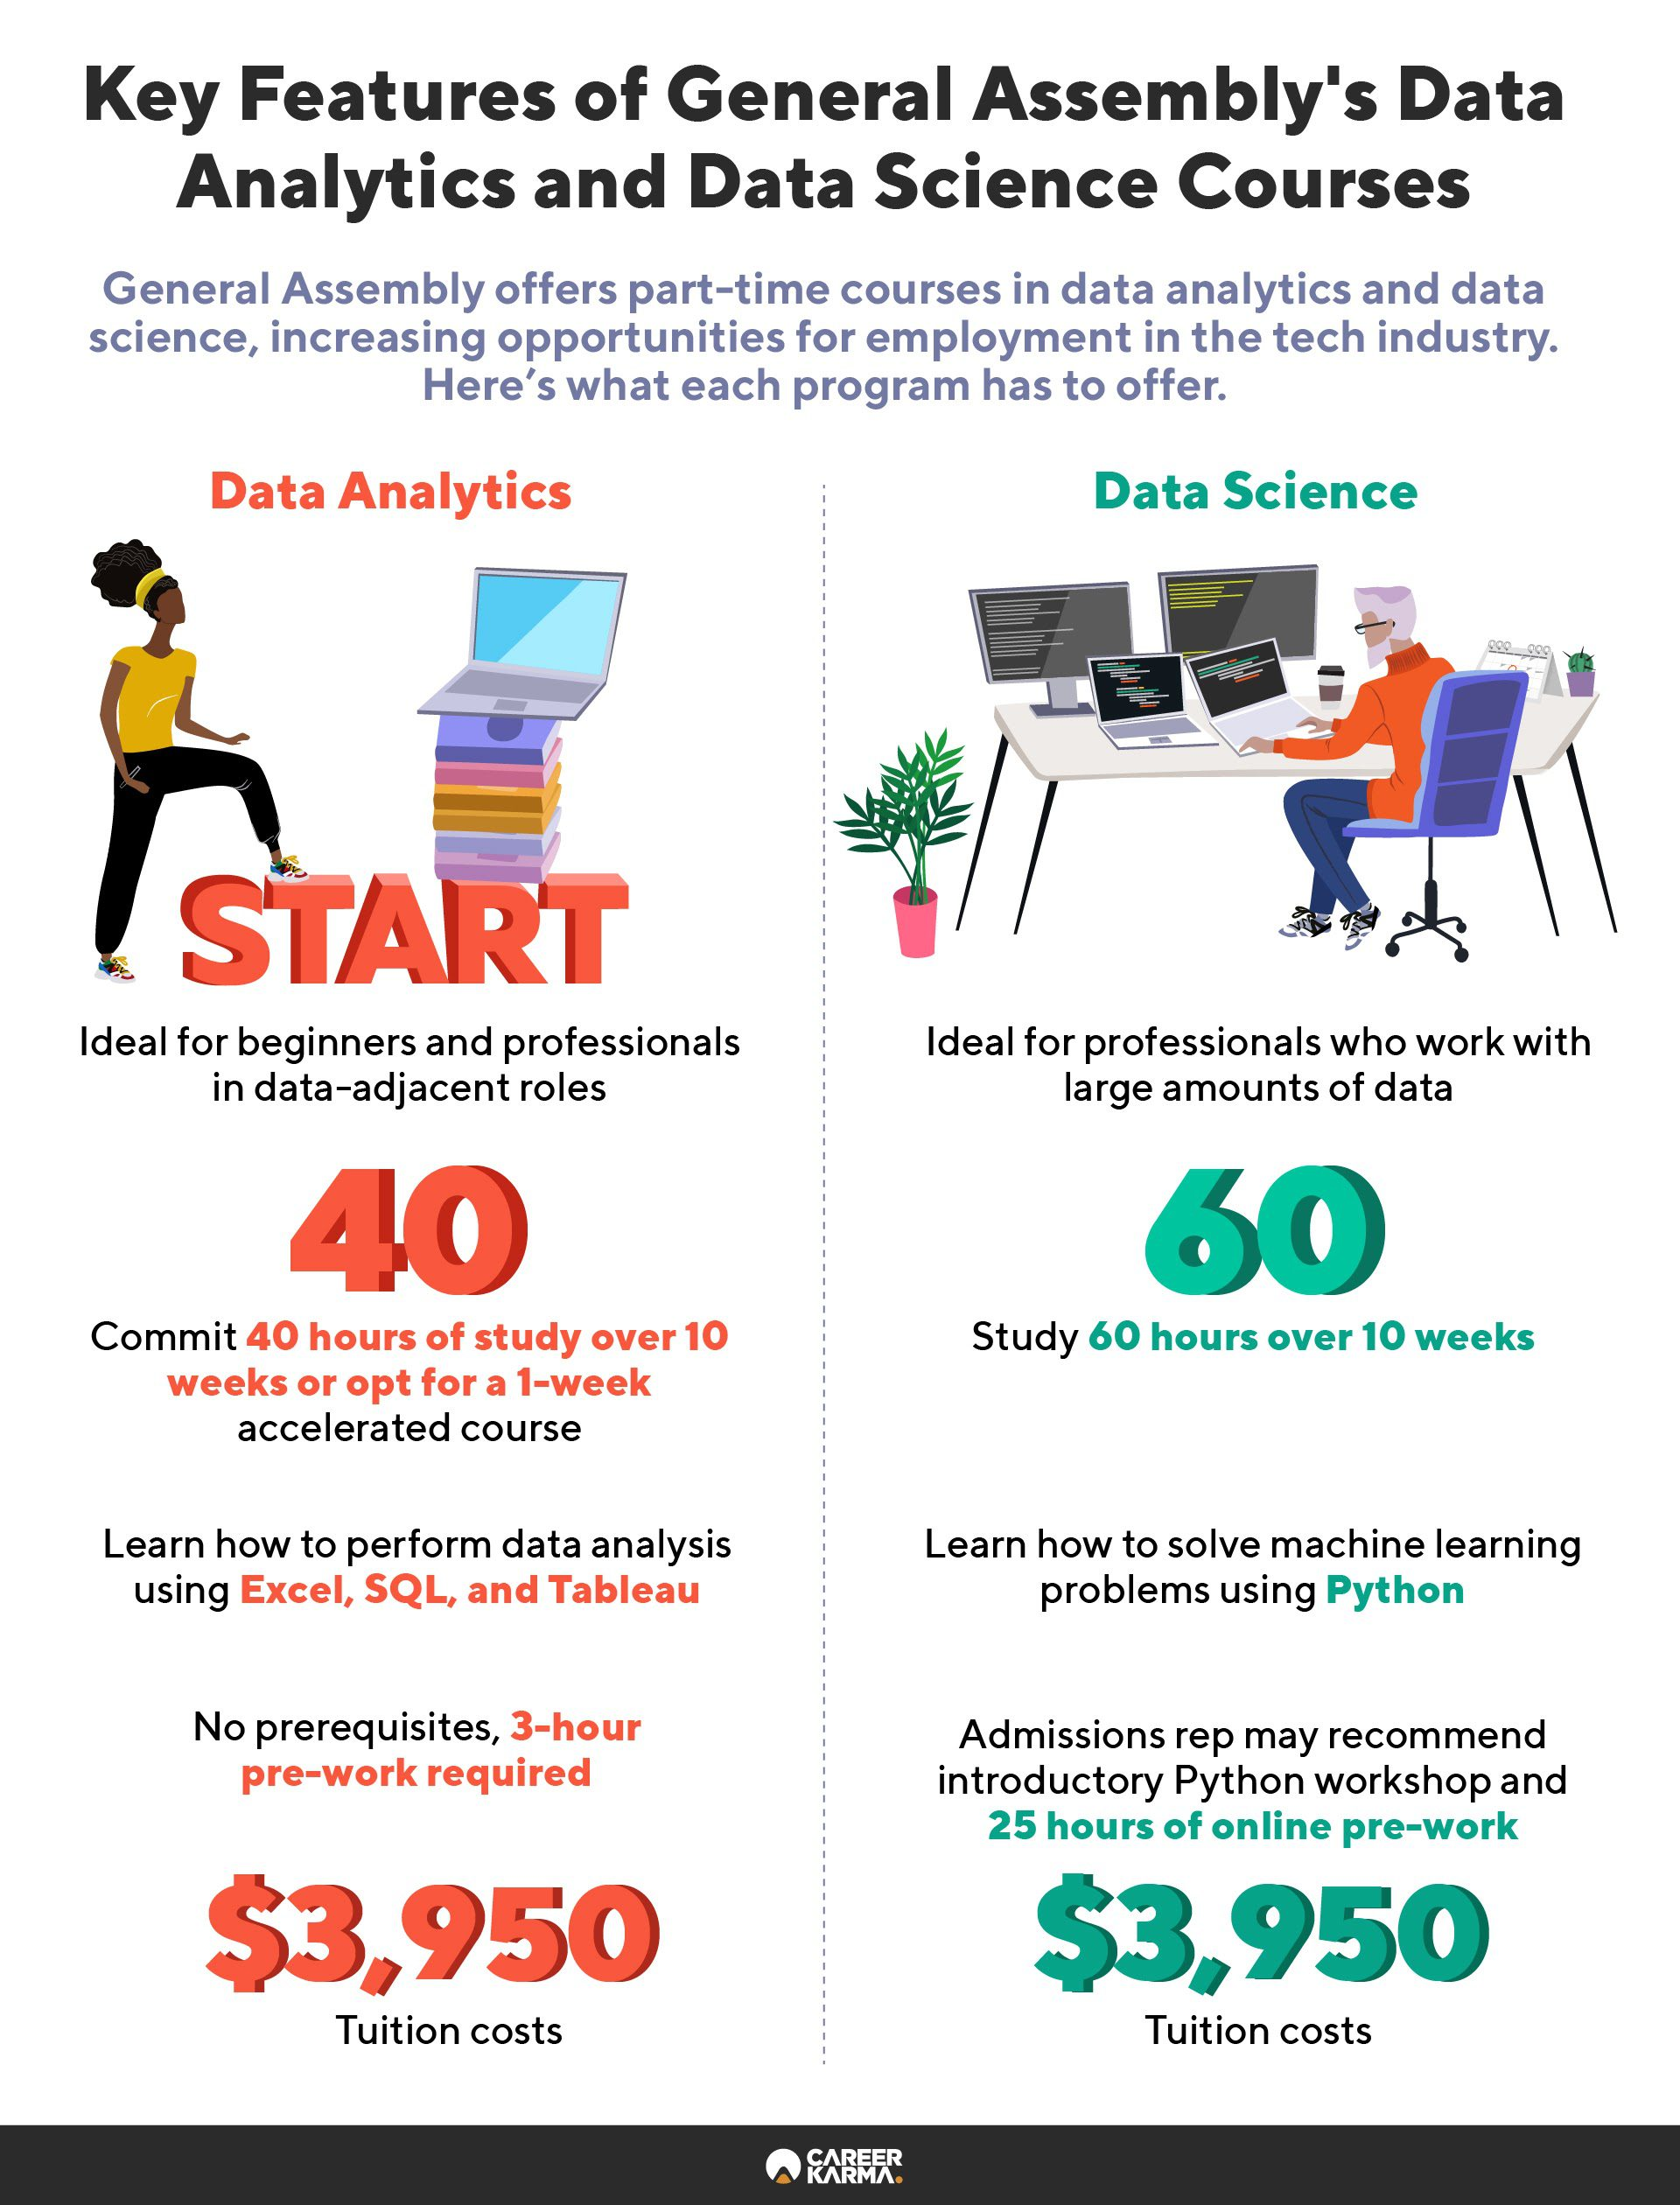 An infographic comparing the key features of General Assembly's part-time data analytics and data science courses